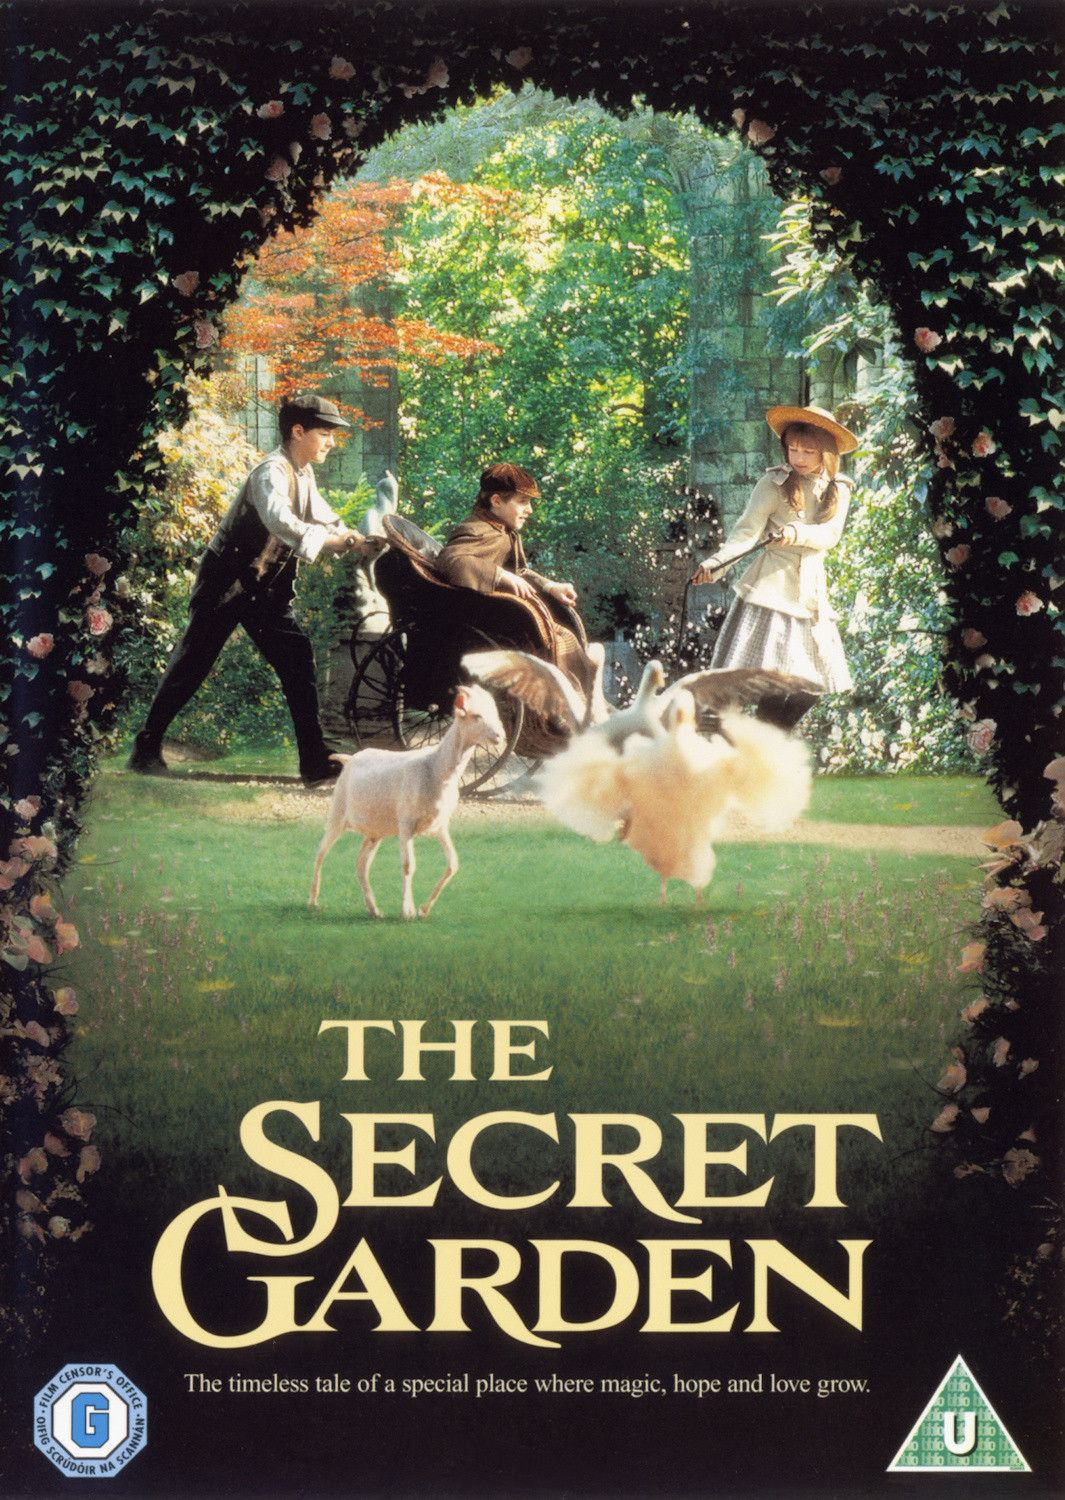 THE SECRET GARDEN (1993). Lots of great memories of this